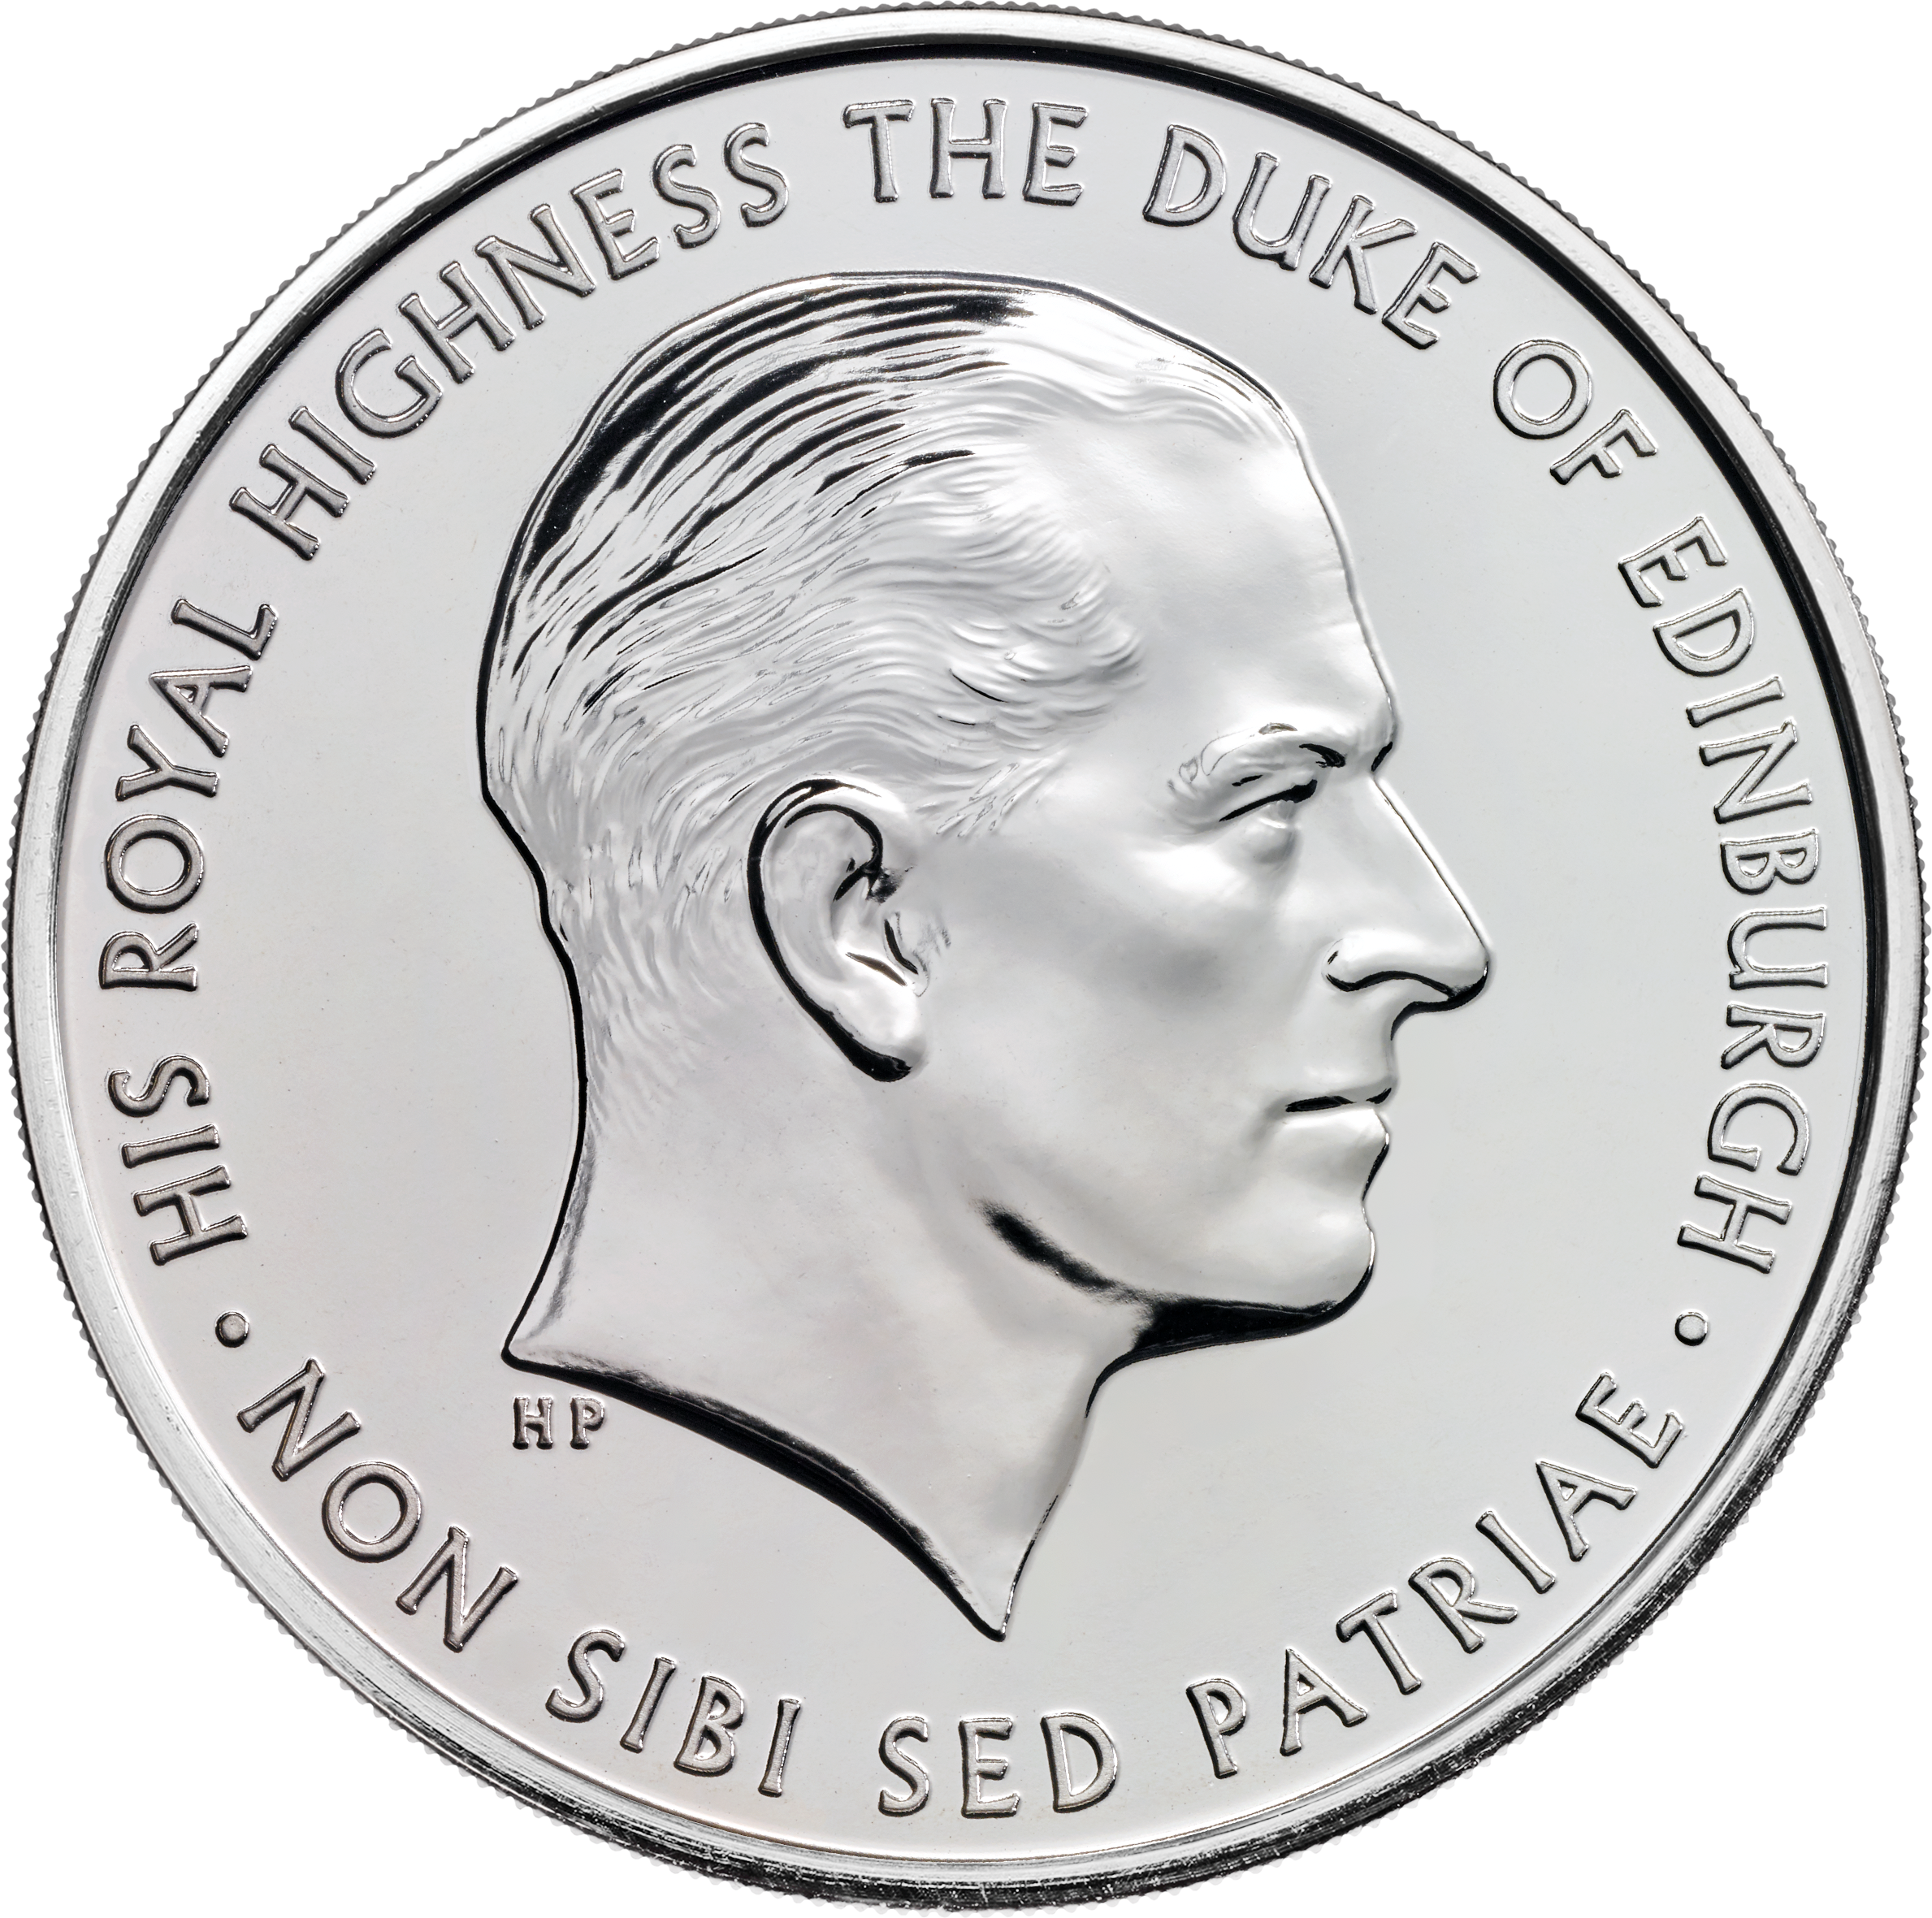 prince philip bu obvprince philip celebrating a life of service 2017 uk c2a35 brilliant uncirculated coin reverse uku039201 - The Royal Mint has just announced the release of a brand new UK Prince Philip coin